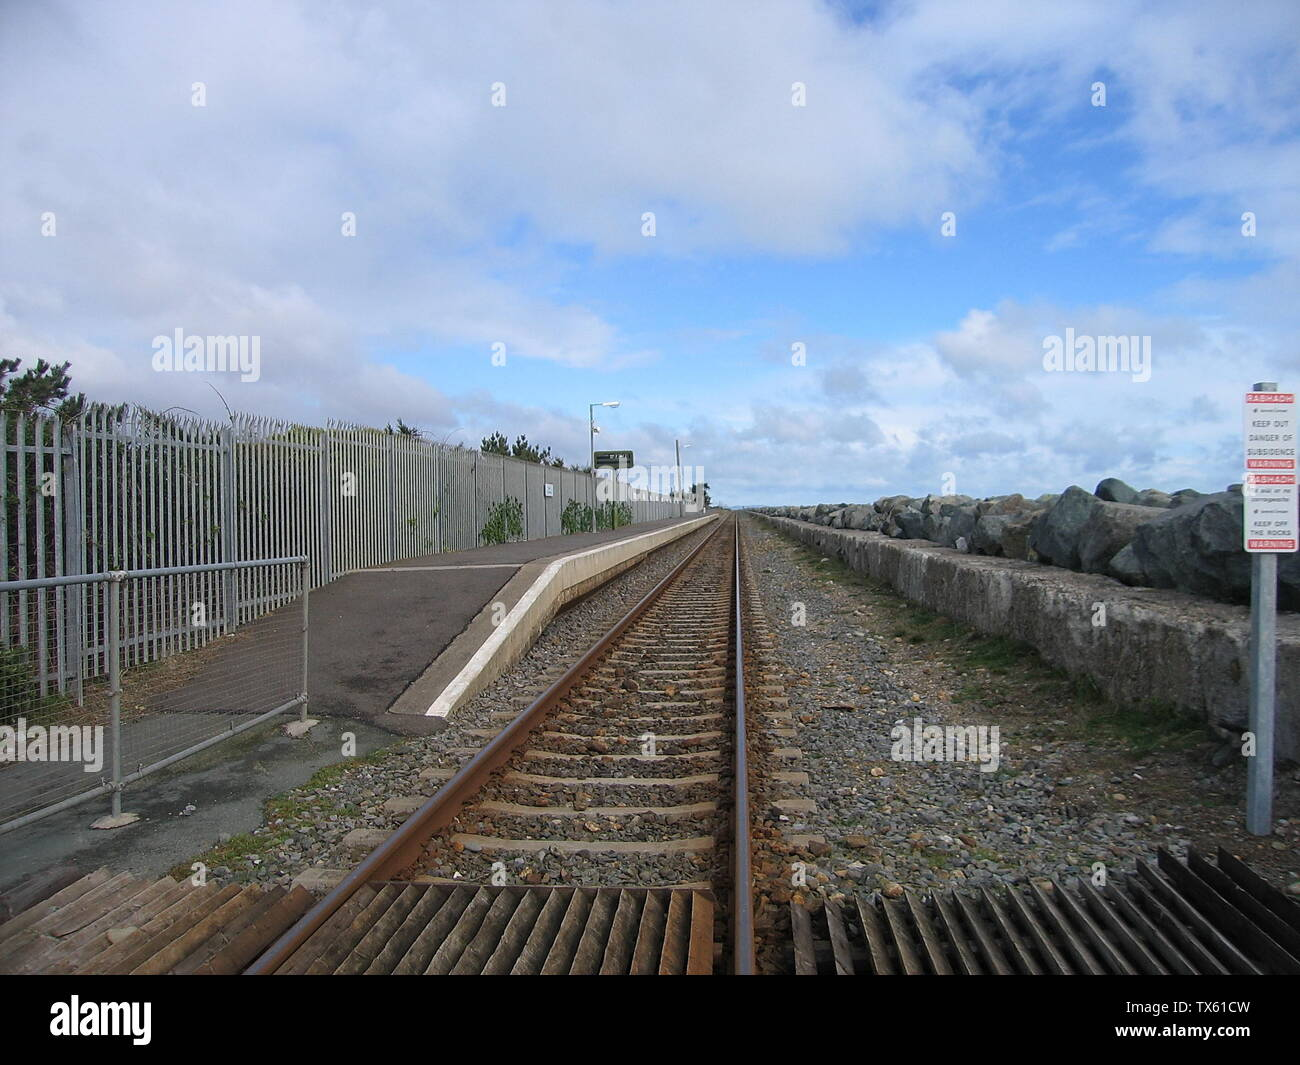 Kilcoole, Co. Wicklow - Irish Rail